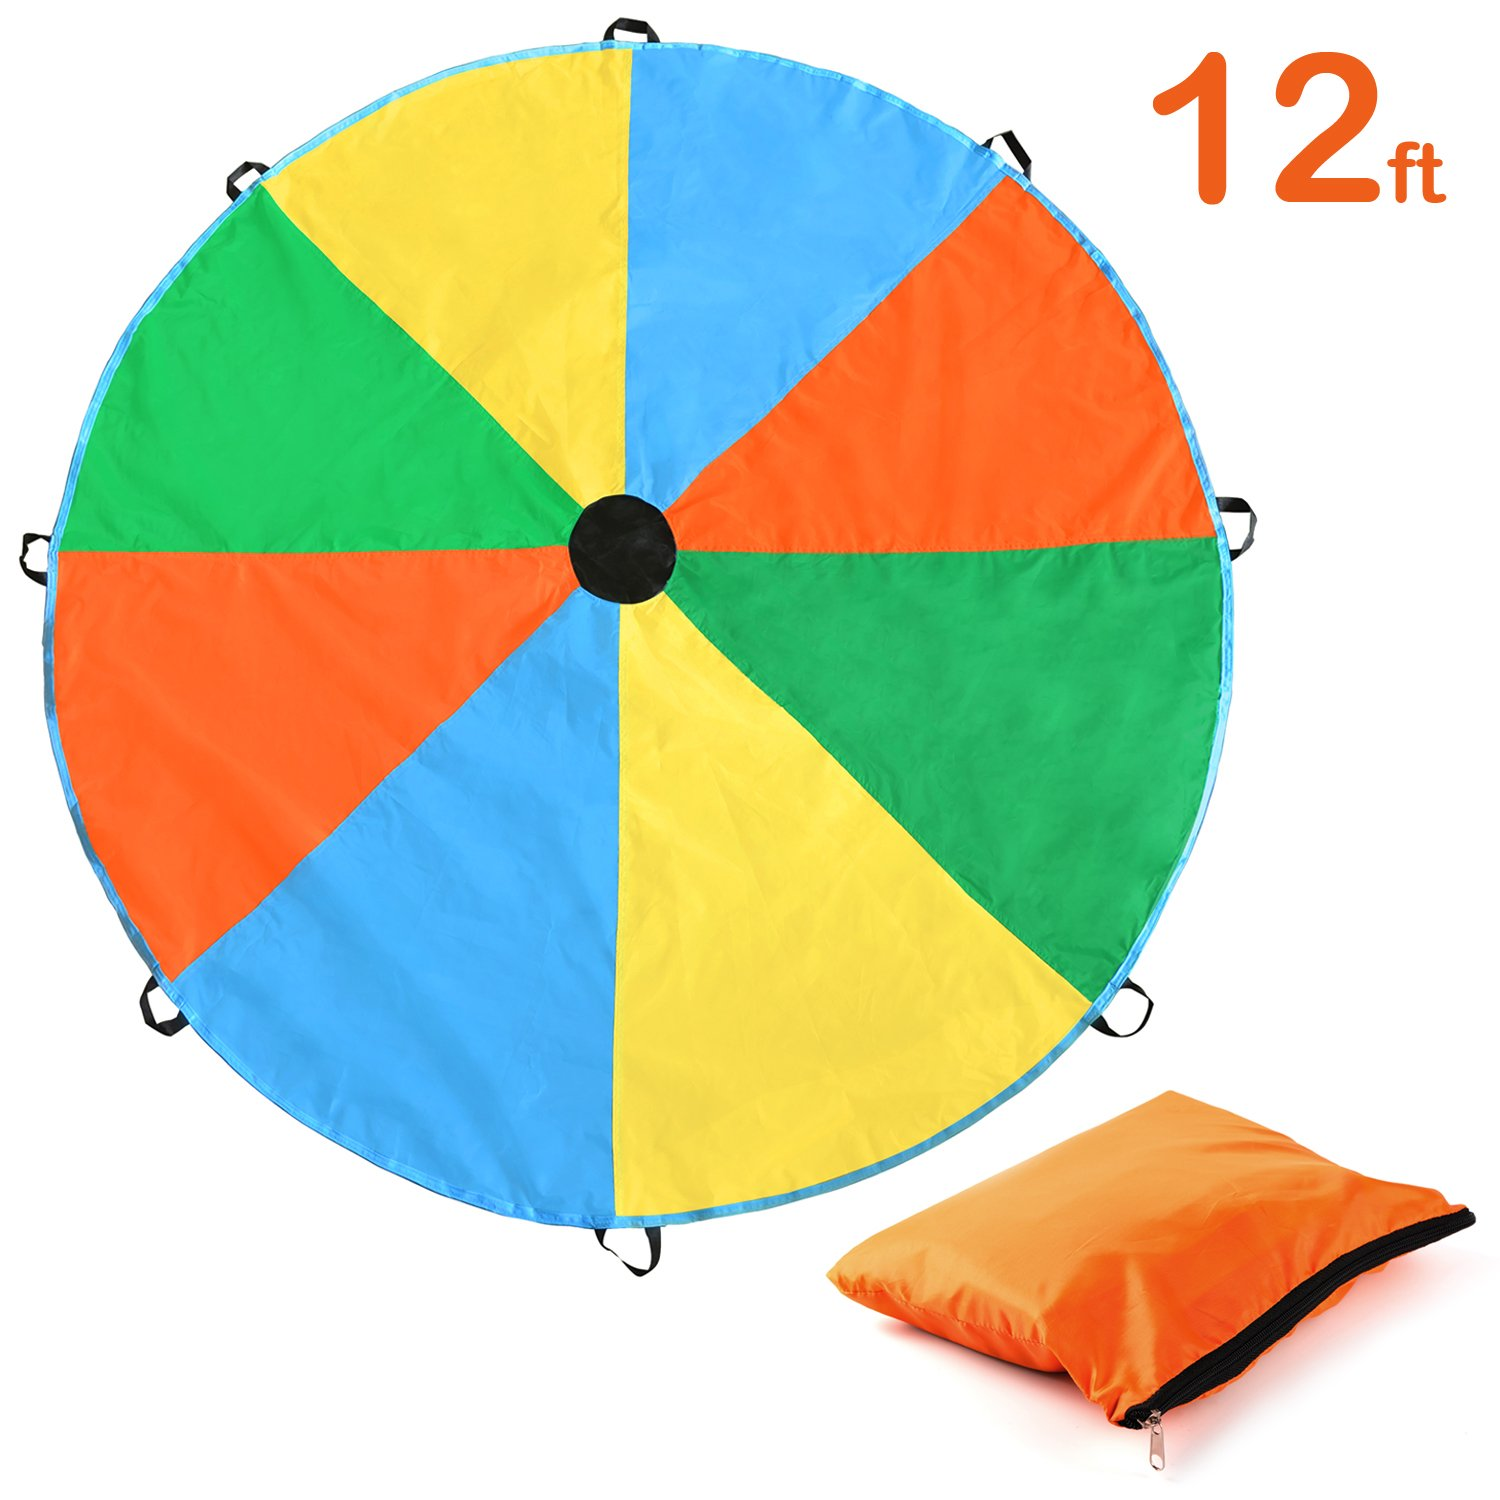 Kids Parachute, Magicfly 12 Feet Parachute Toys with 8 Handles for Kids Play, Kids Games, Outdoor Games, Outdoor Toys